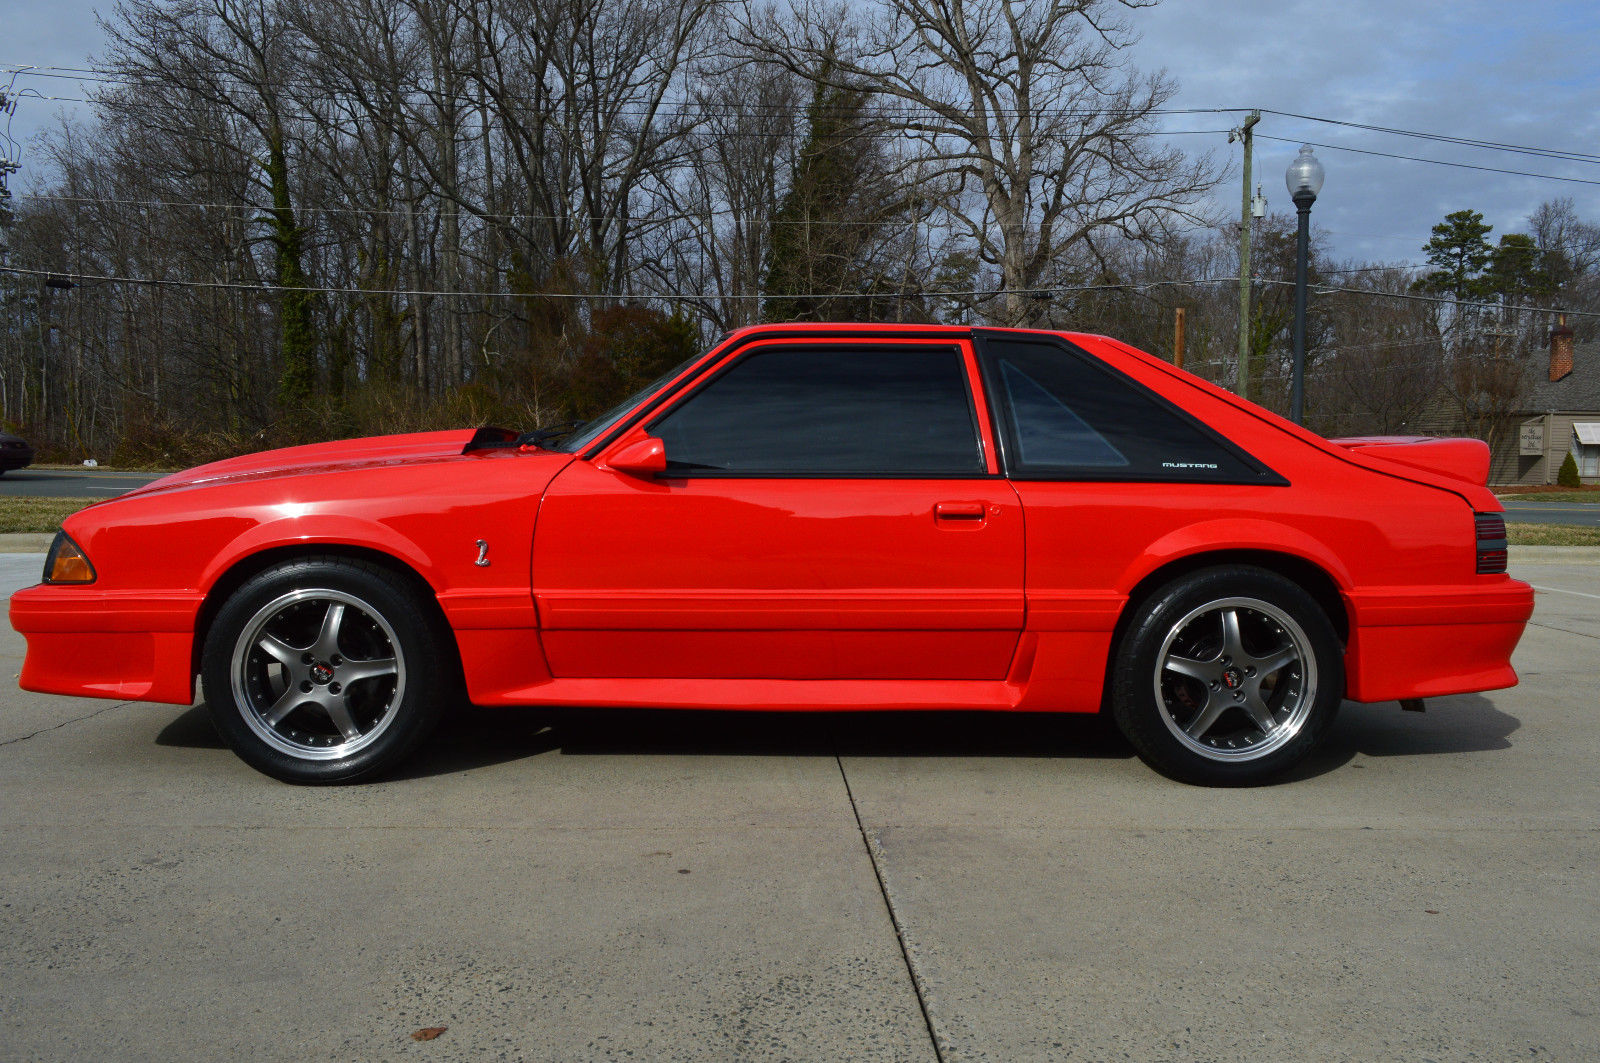 Awesome 1990 Ford Mustang Cobra R Fully Restored 1990 Ford ...